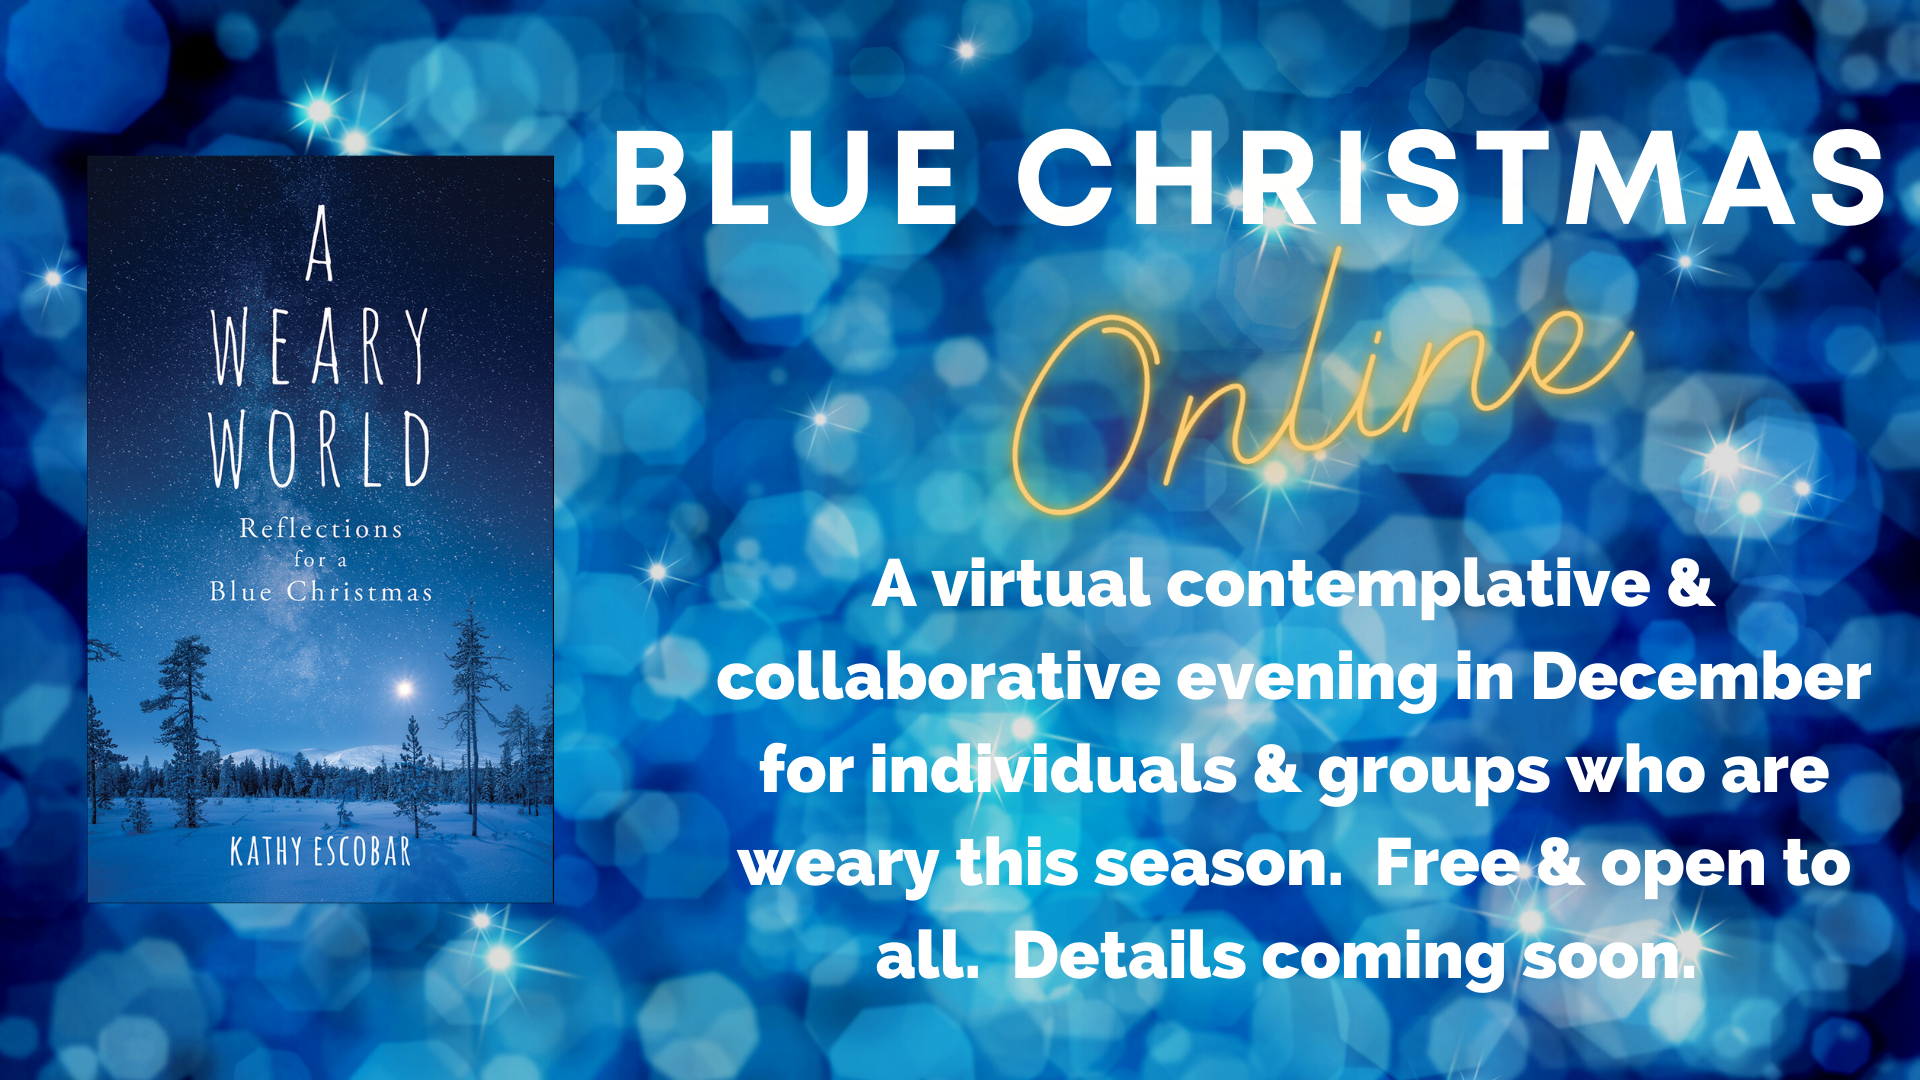 Blue-Christmas-Online-Event-Image-for-Home-Page